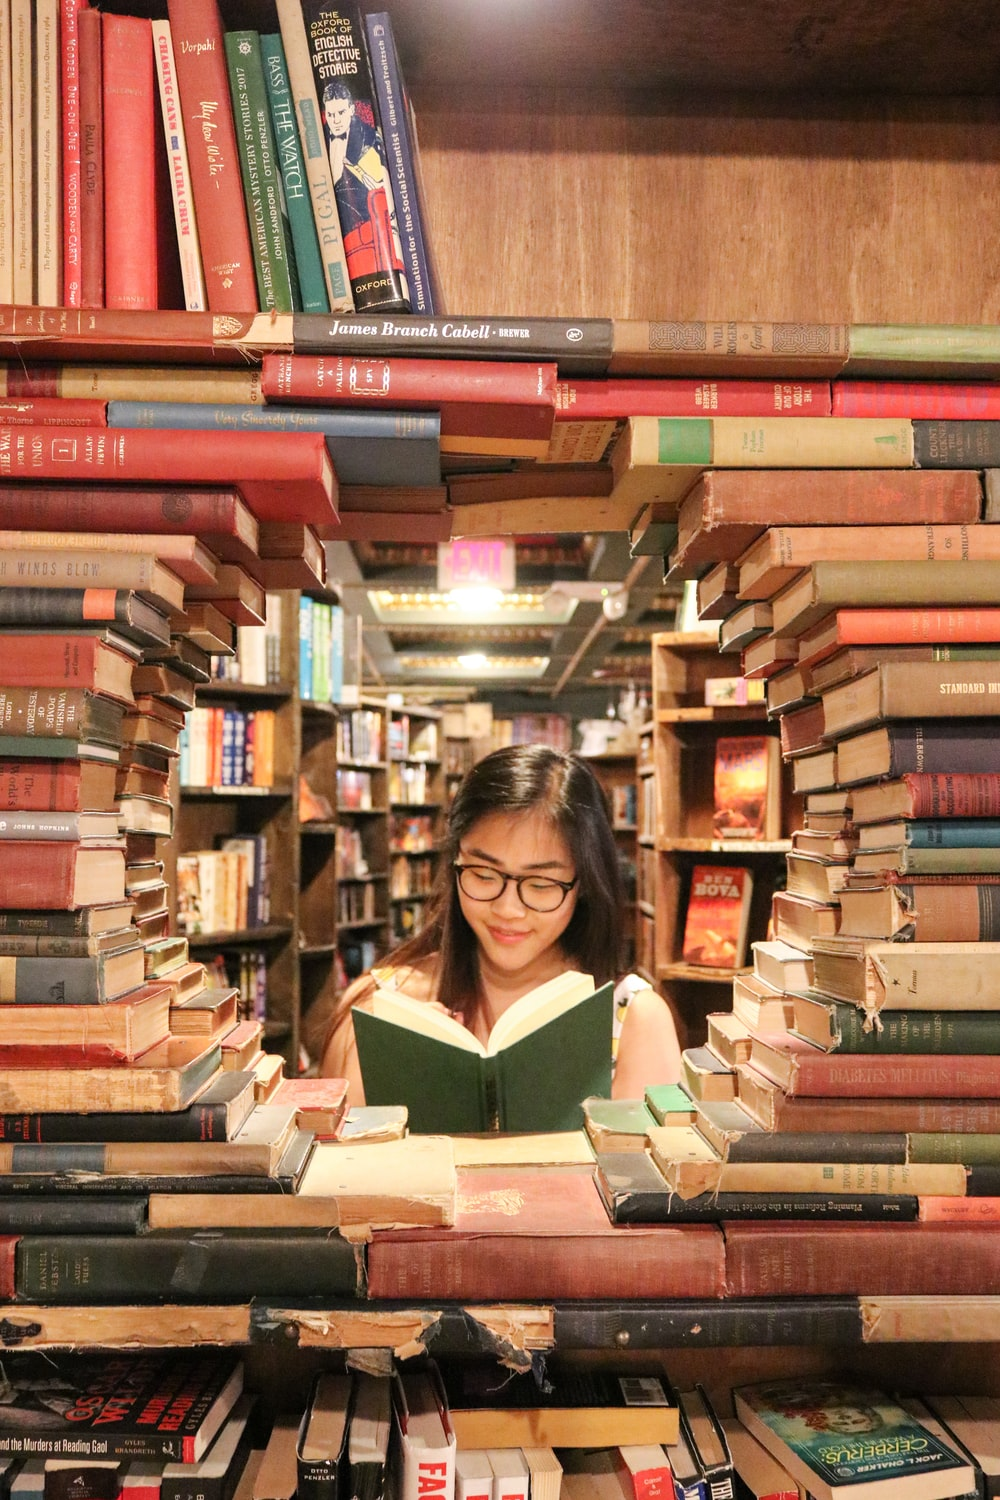 woman in green shirt sitting on books